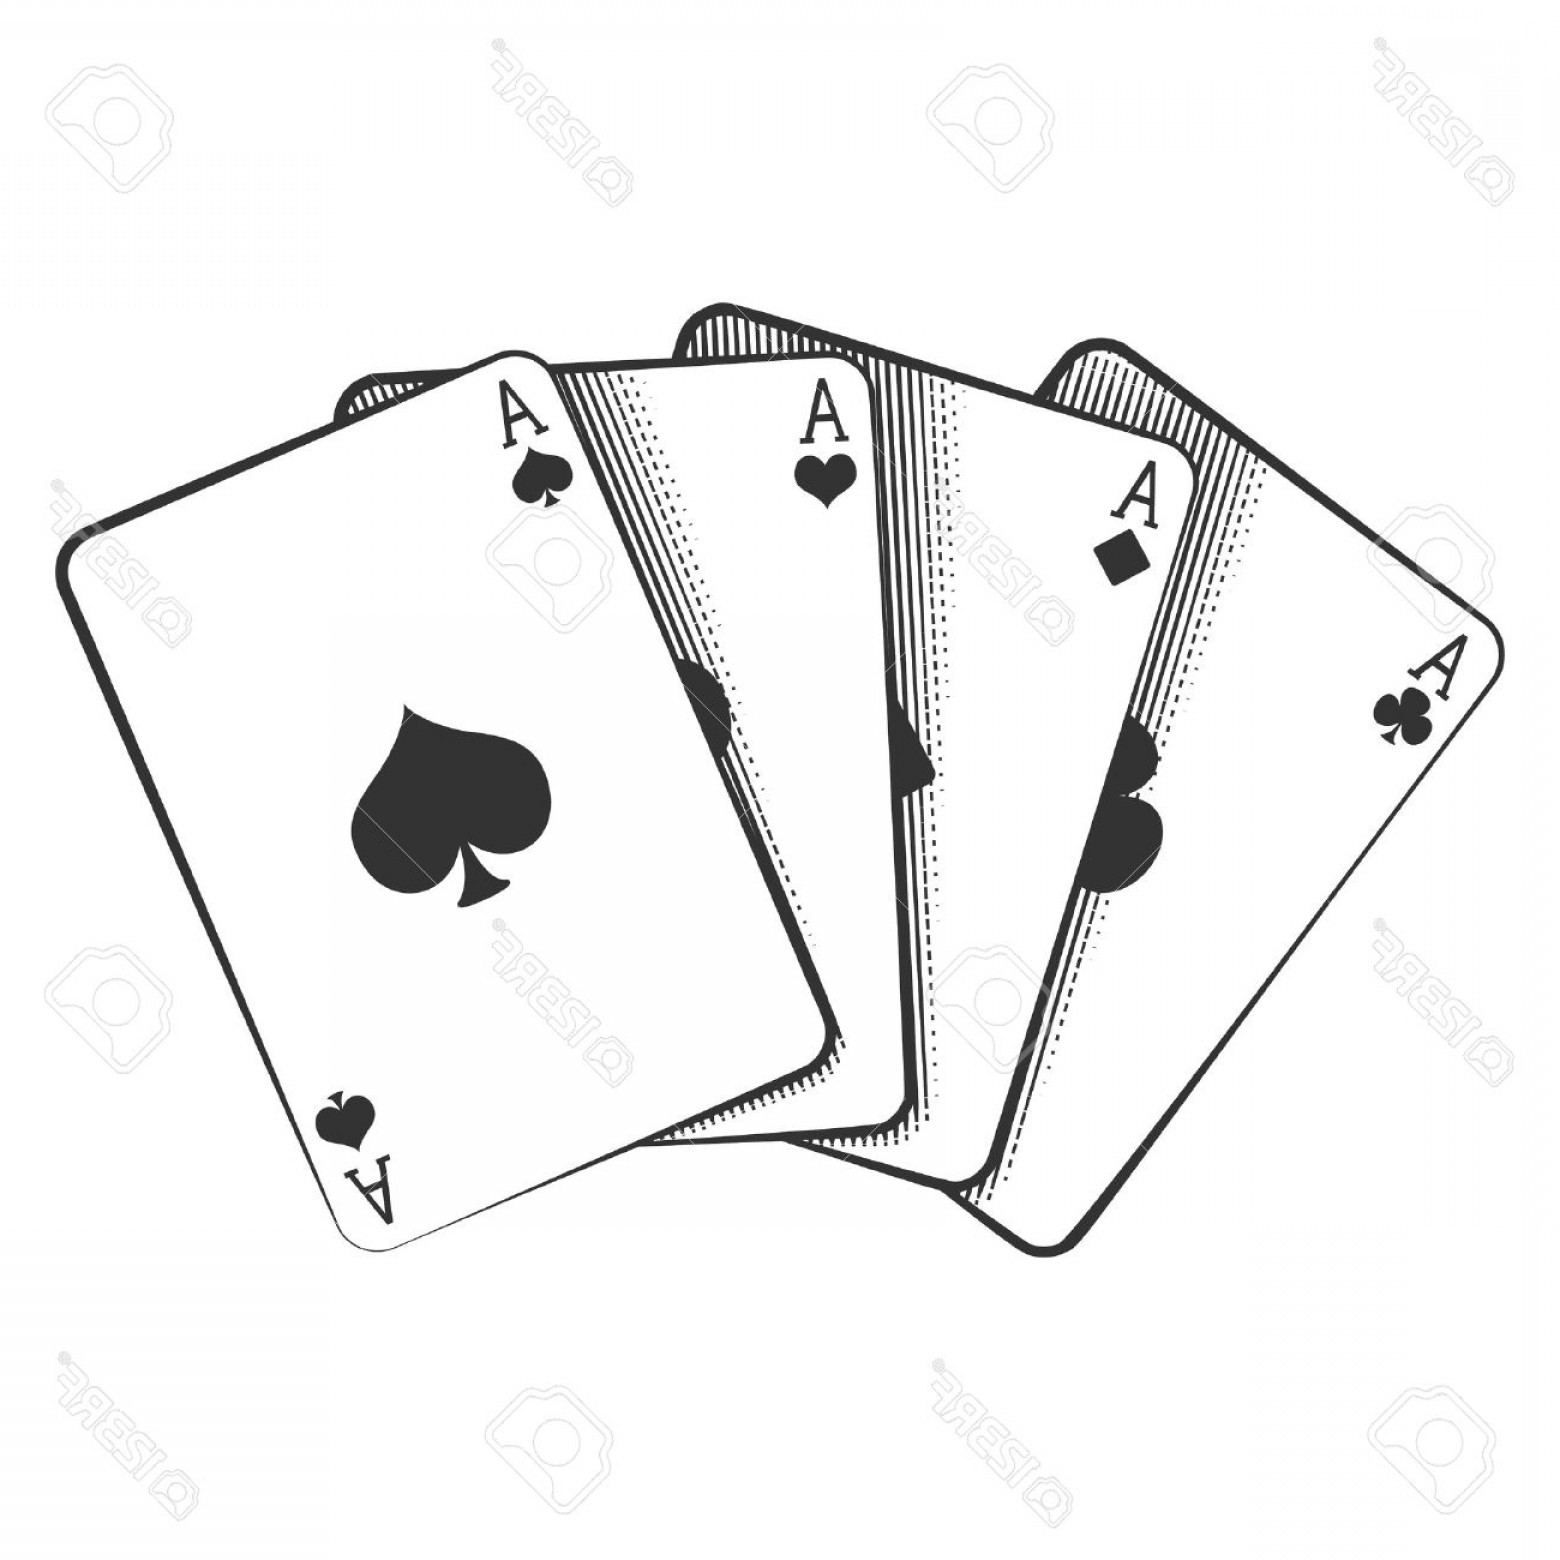 Poker Hand Vector: Photostock Vector A Winning Poker Hand Of Four Aces Playing Cards Suits On White